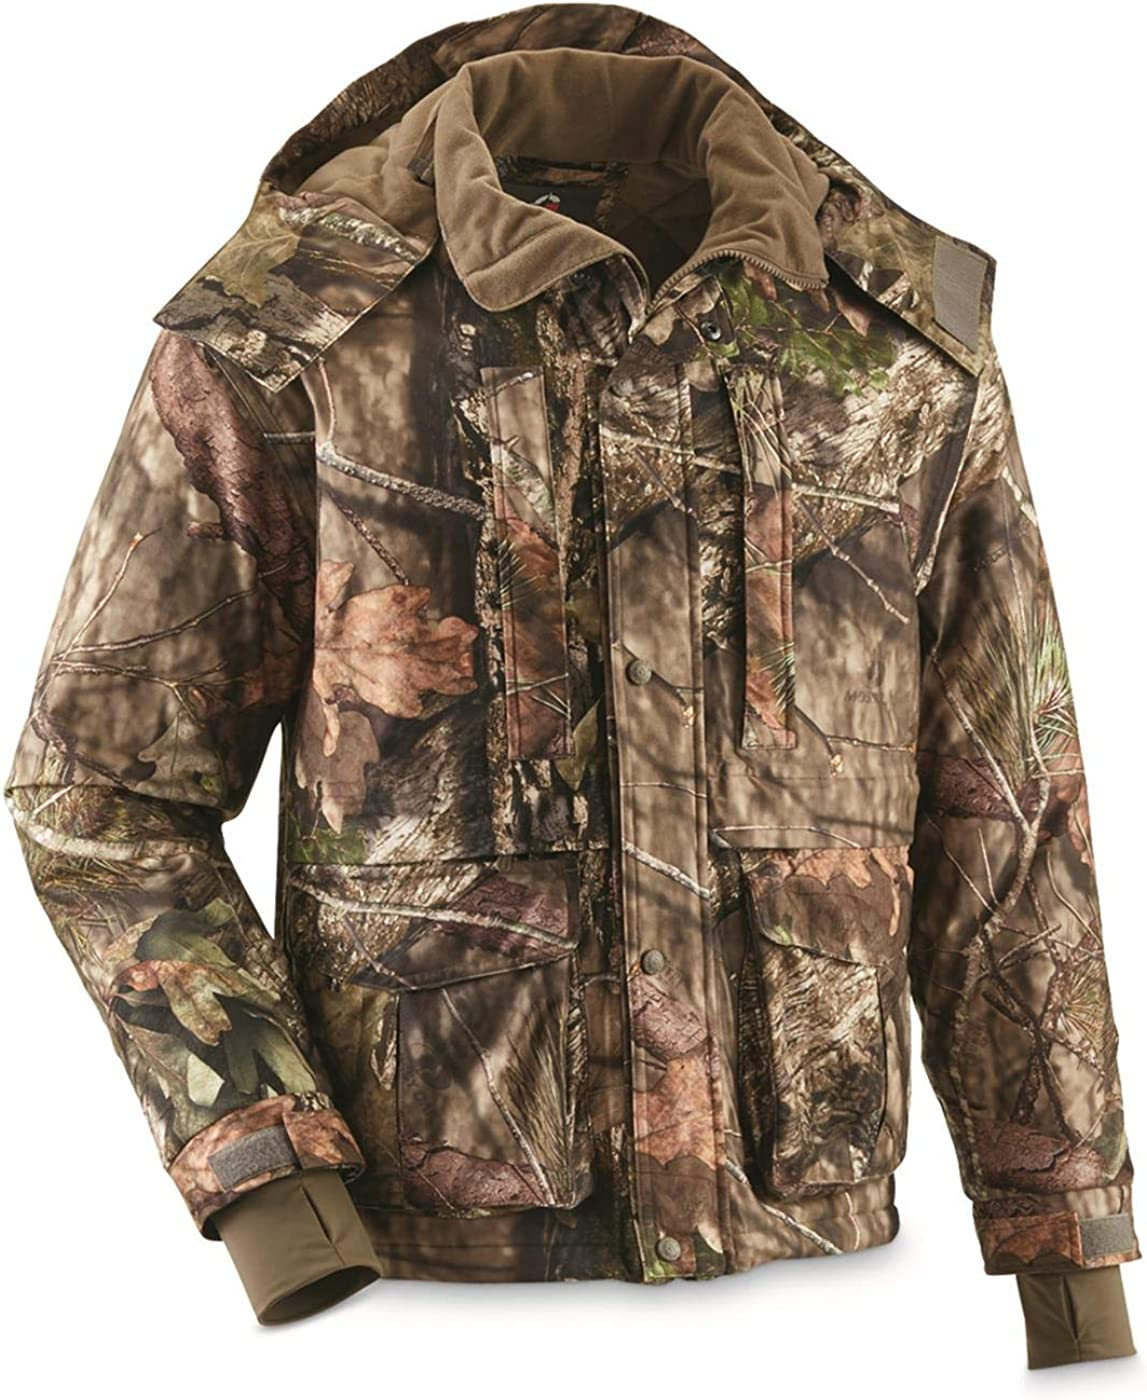 Men's Guide Dry Hunt Parka, Waterproof, Insulated